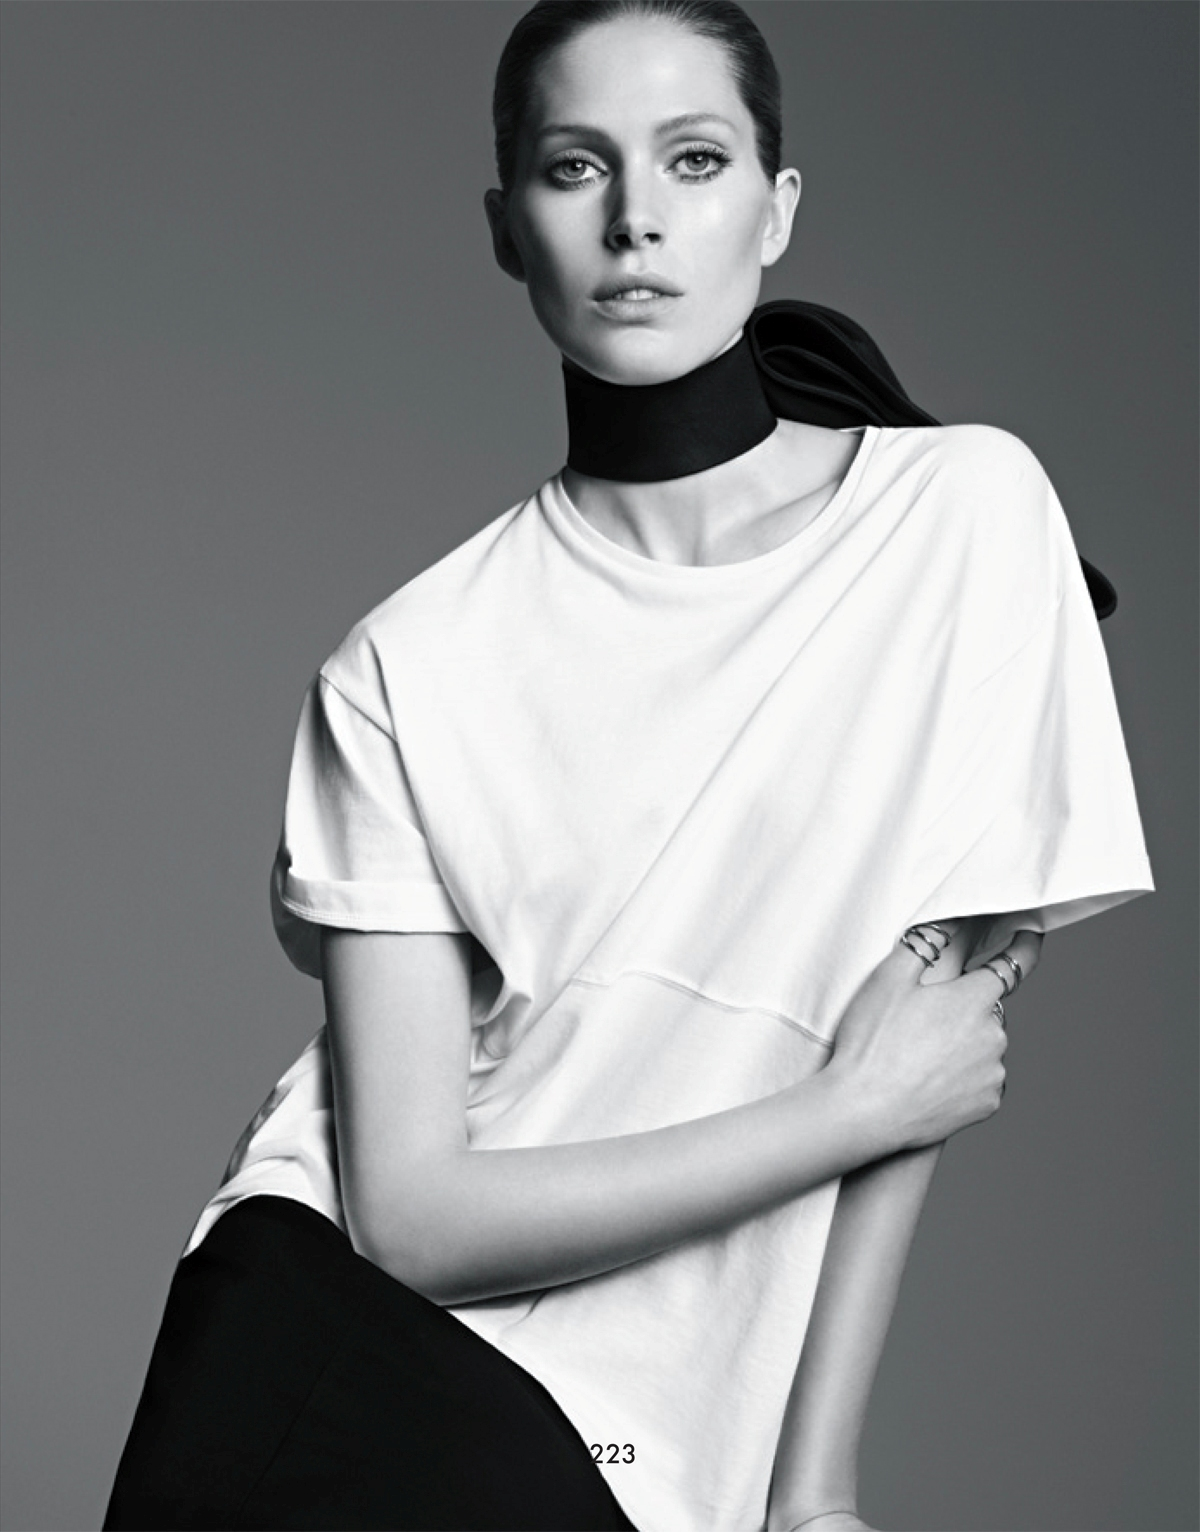 Iselin-Steiro-by-Karim-Sadli-for-The-Gentlewoman-Spring-Summer-2013